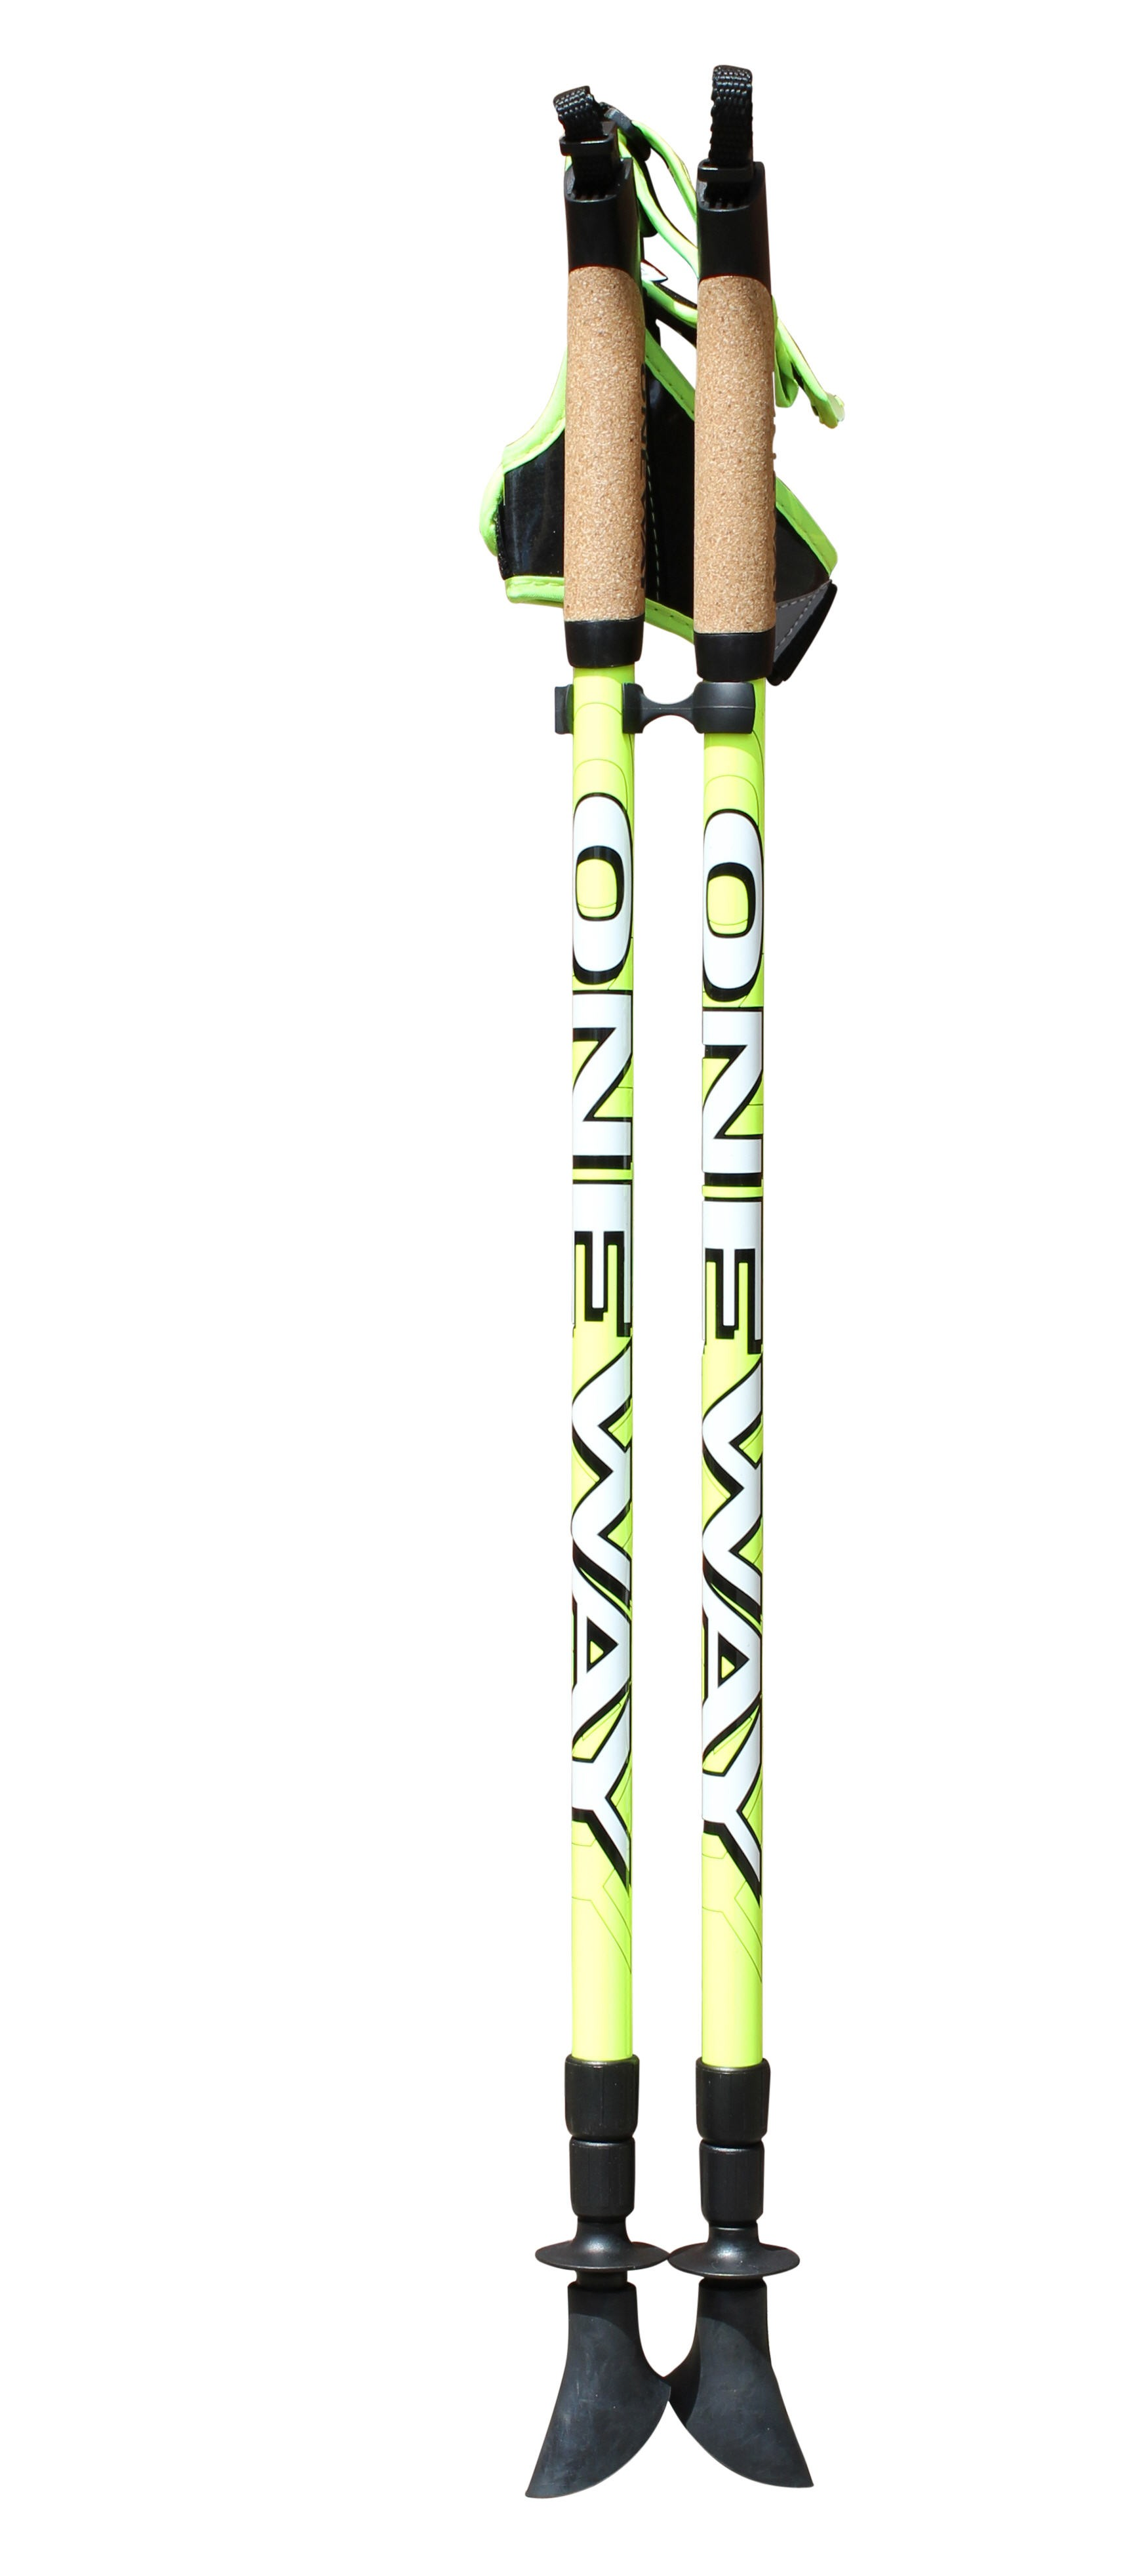 ONE WAY 3-Piece Adjustable Nordic Walking Poles